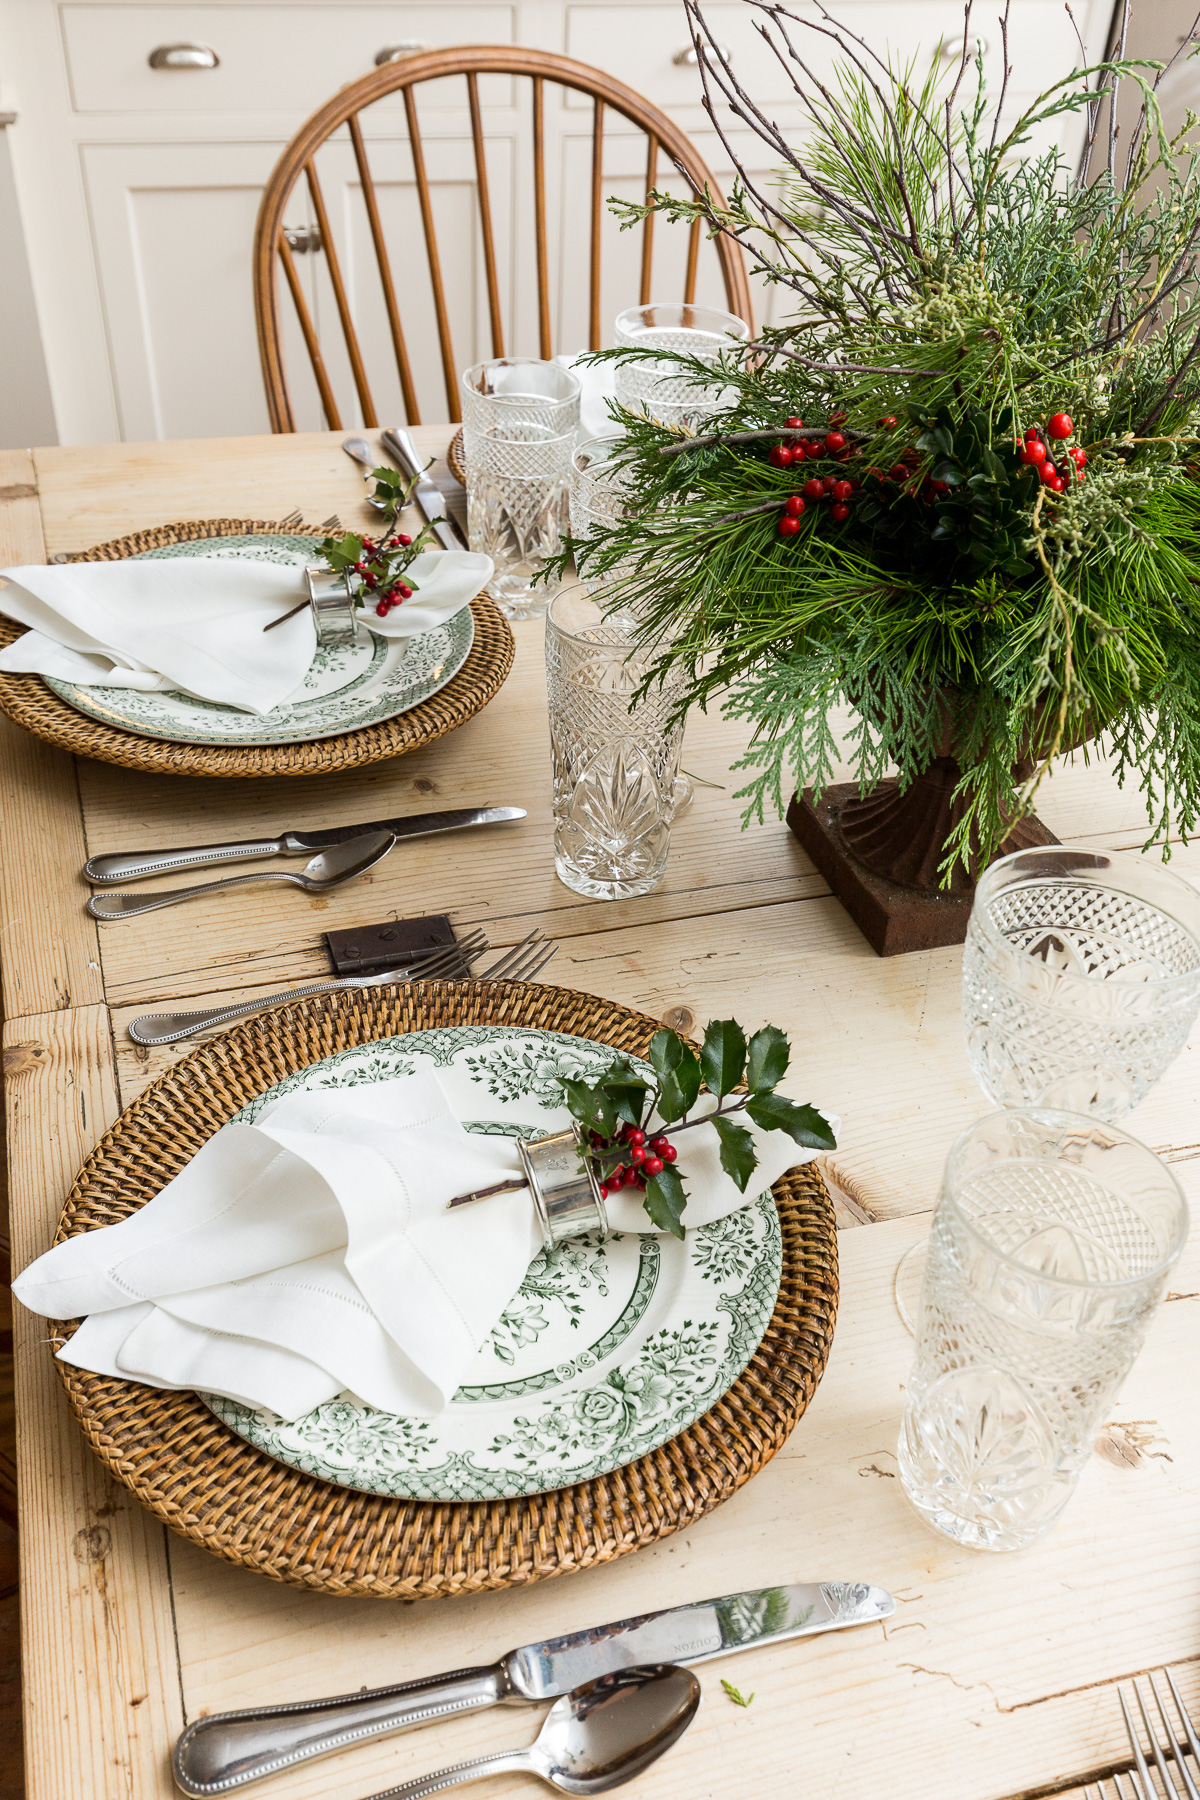 A farmhouse table features holiday greens; layered with organic textures. by Reed & Acanthus Interior Design